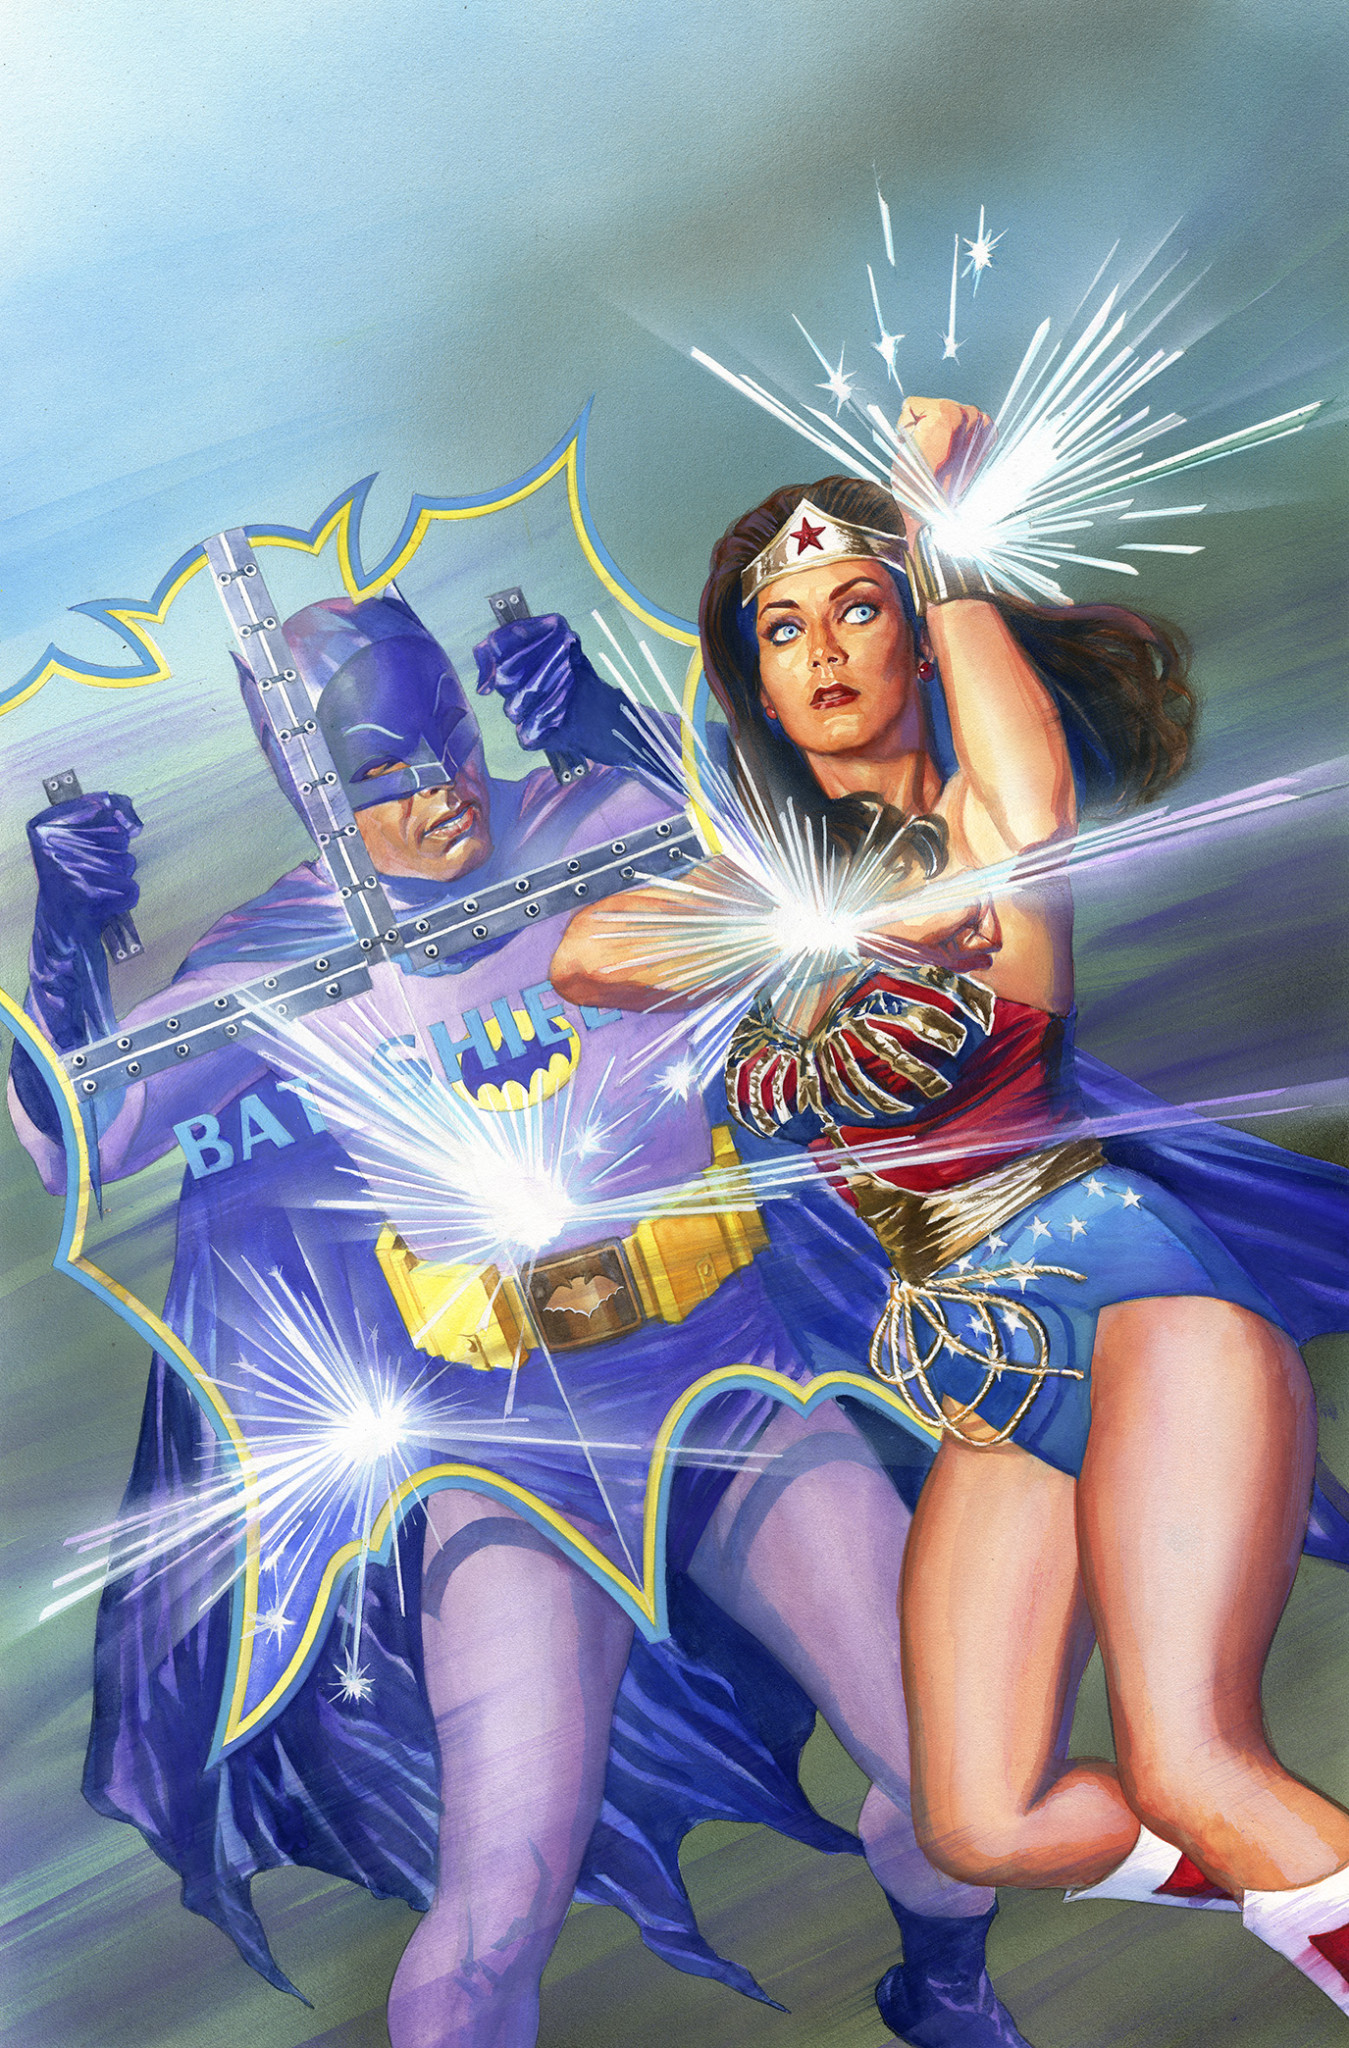 Batman '66 Meets Wonder Woman '77 issue No. 1, variant cover by Alex Ross